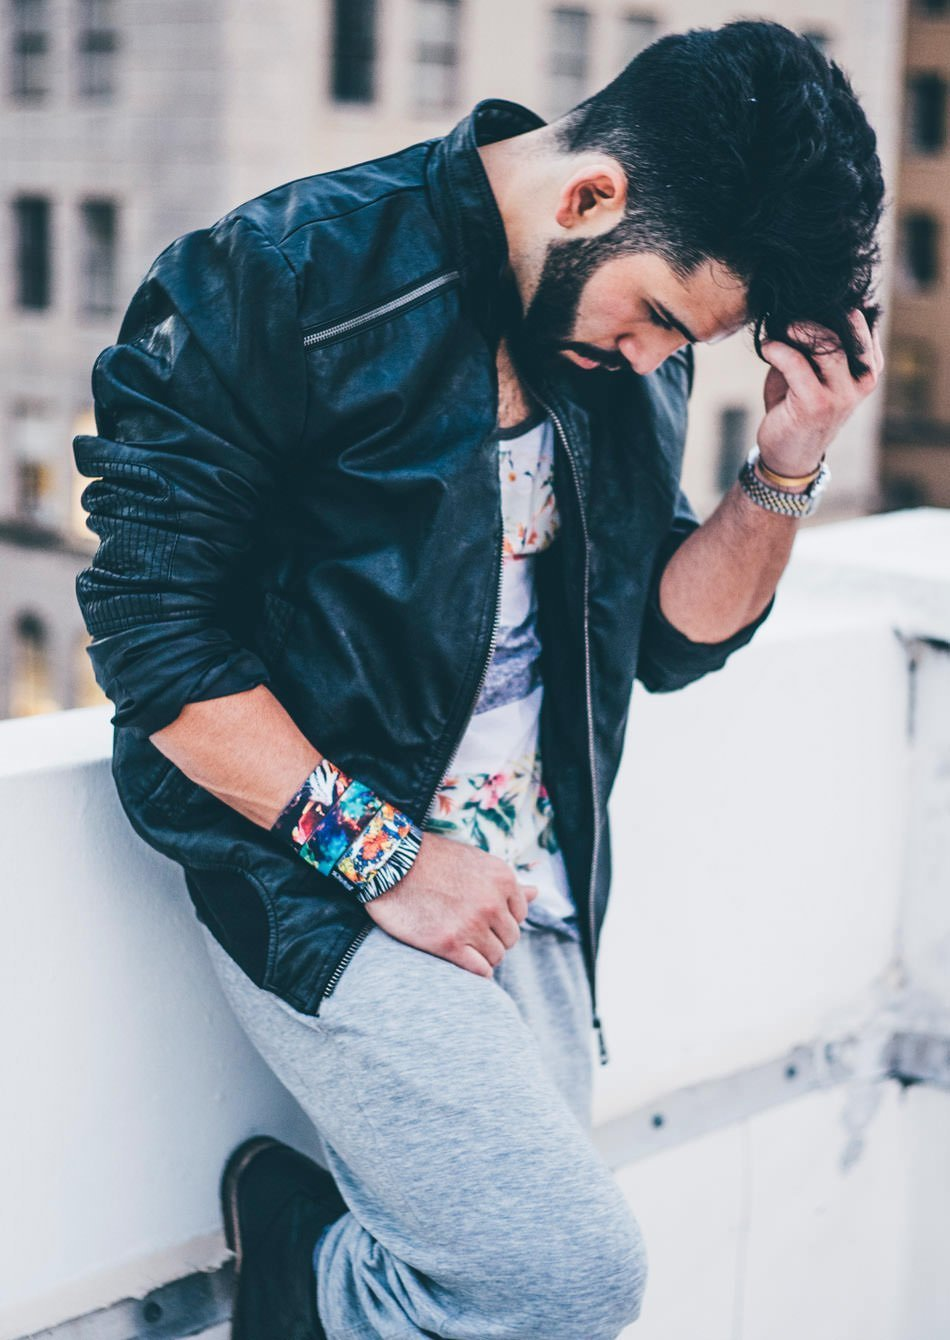 alex veliz lookbook risted bracelets 22